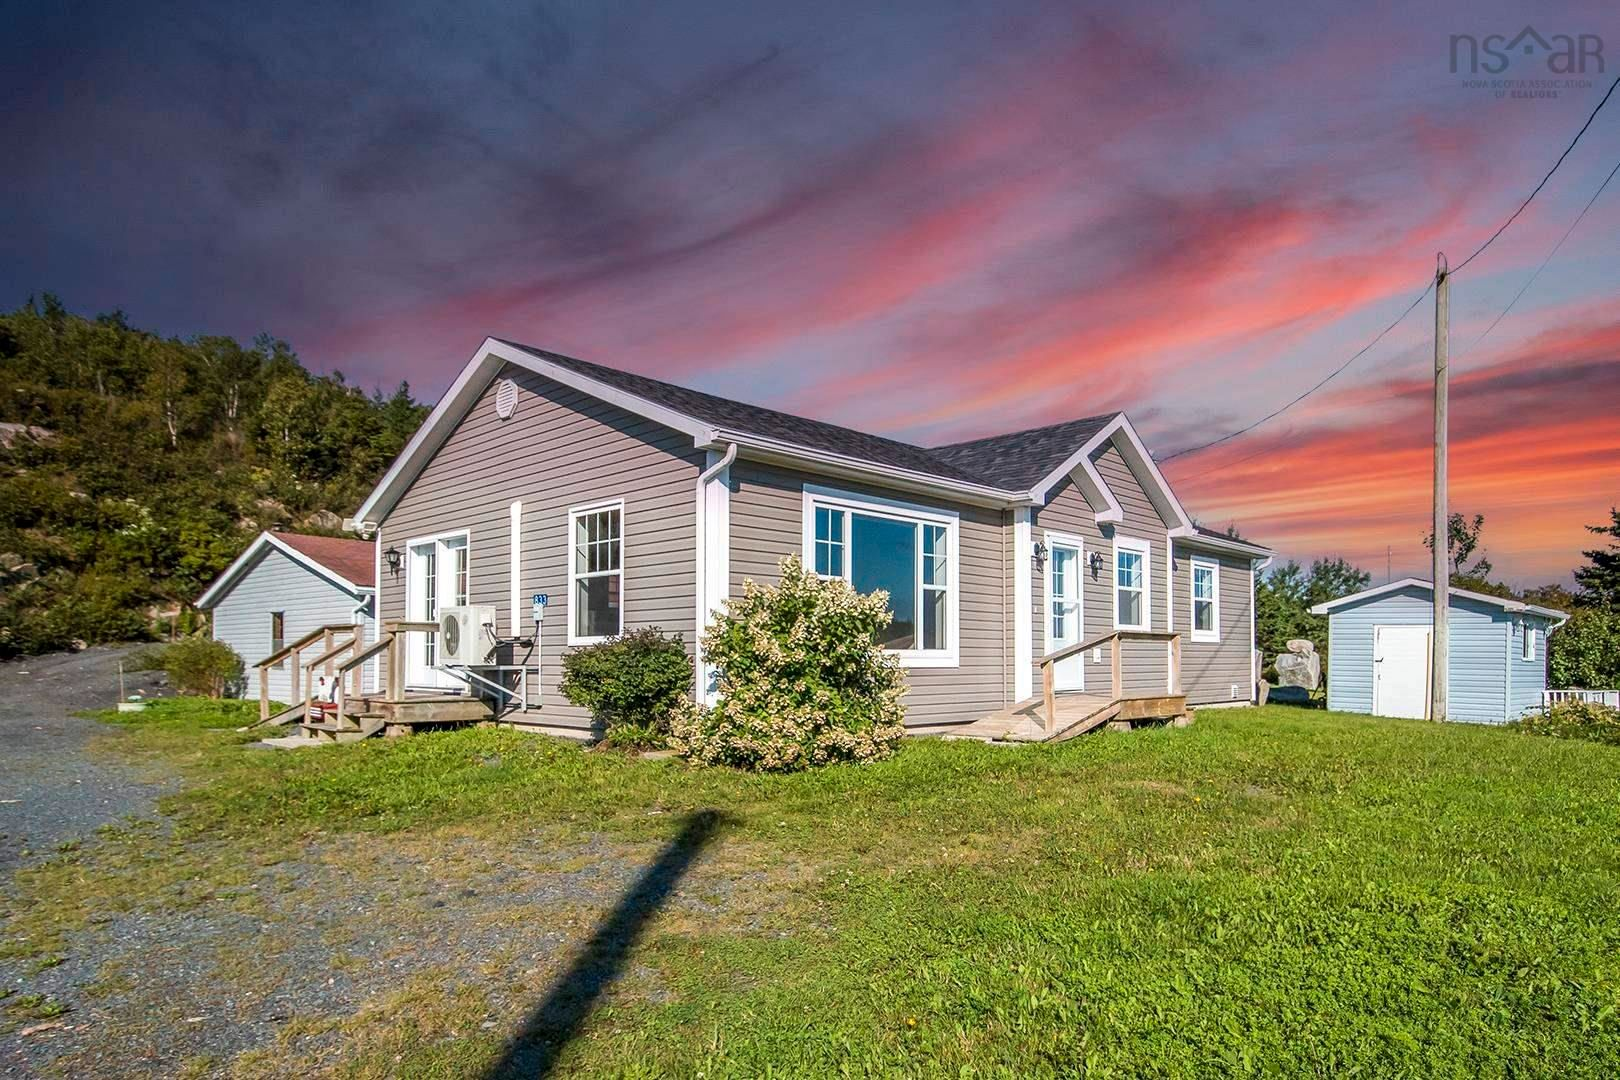 Main Photo: 833 Terence Bay Road in Terence Bay: 40-Timberlea, Prospect, St. Margaret`S Bay Residential for sale (Halifax-Dartmouth)  : MLS®# 202123534